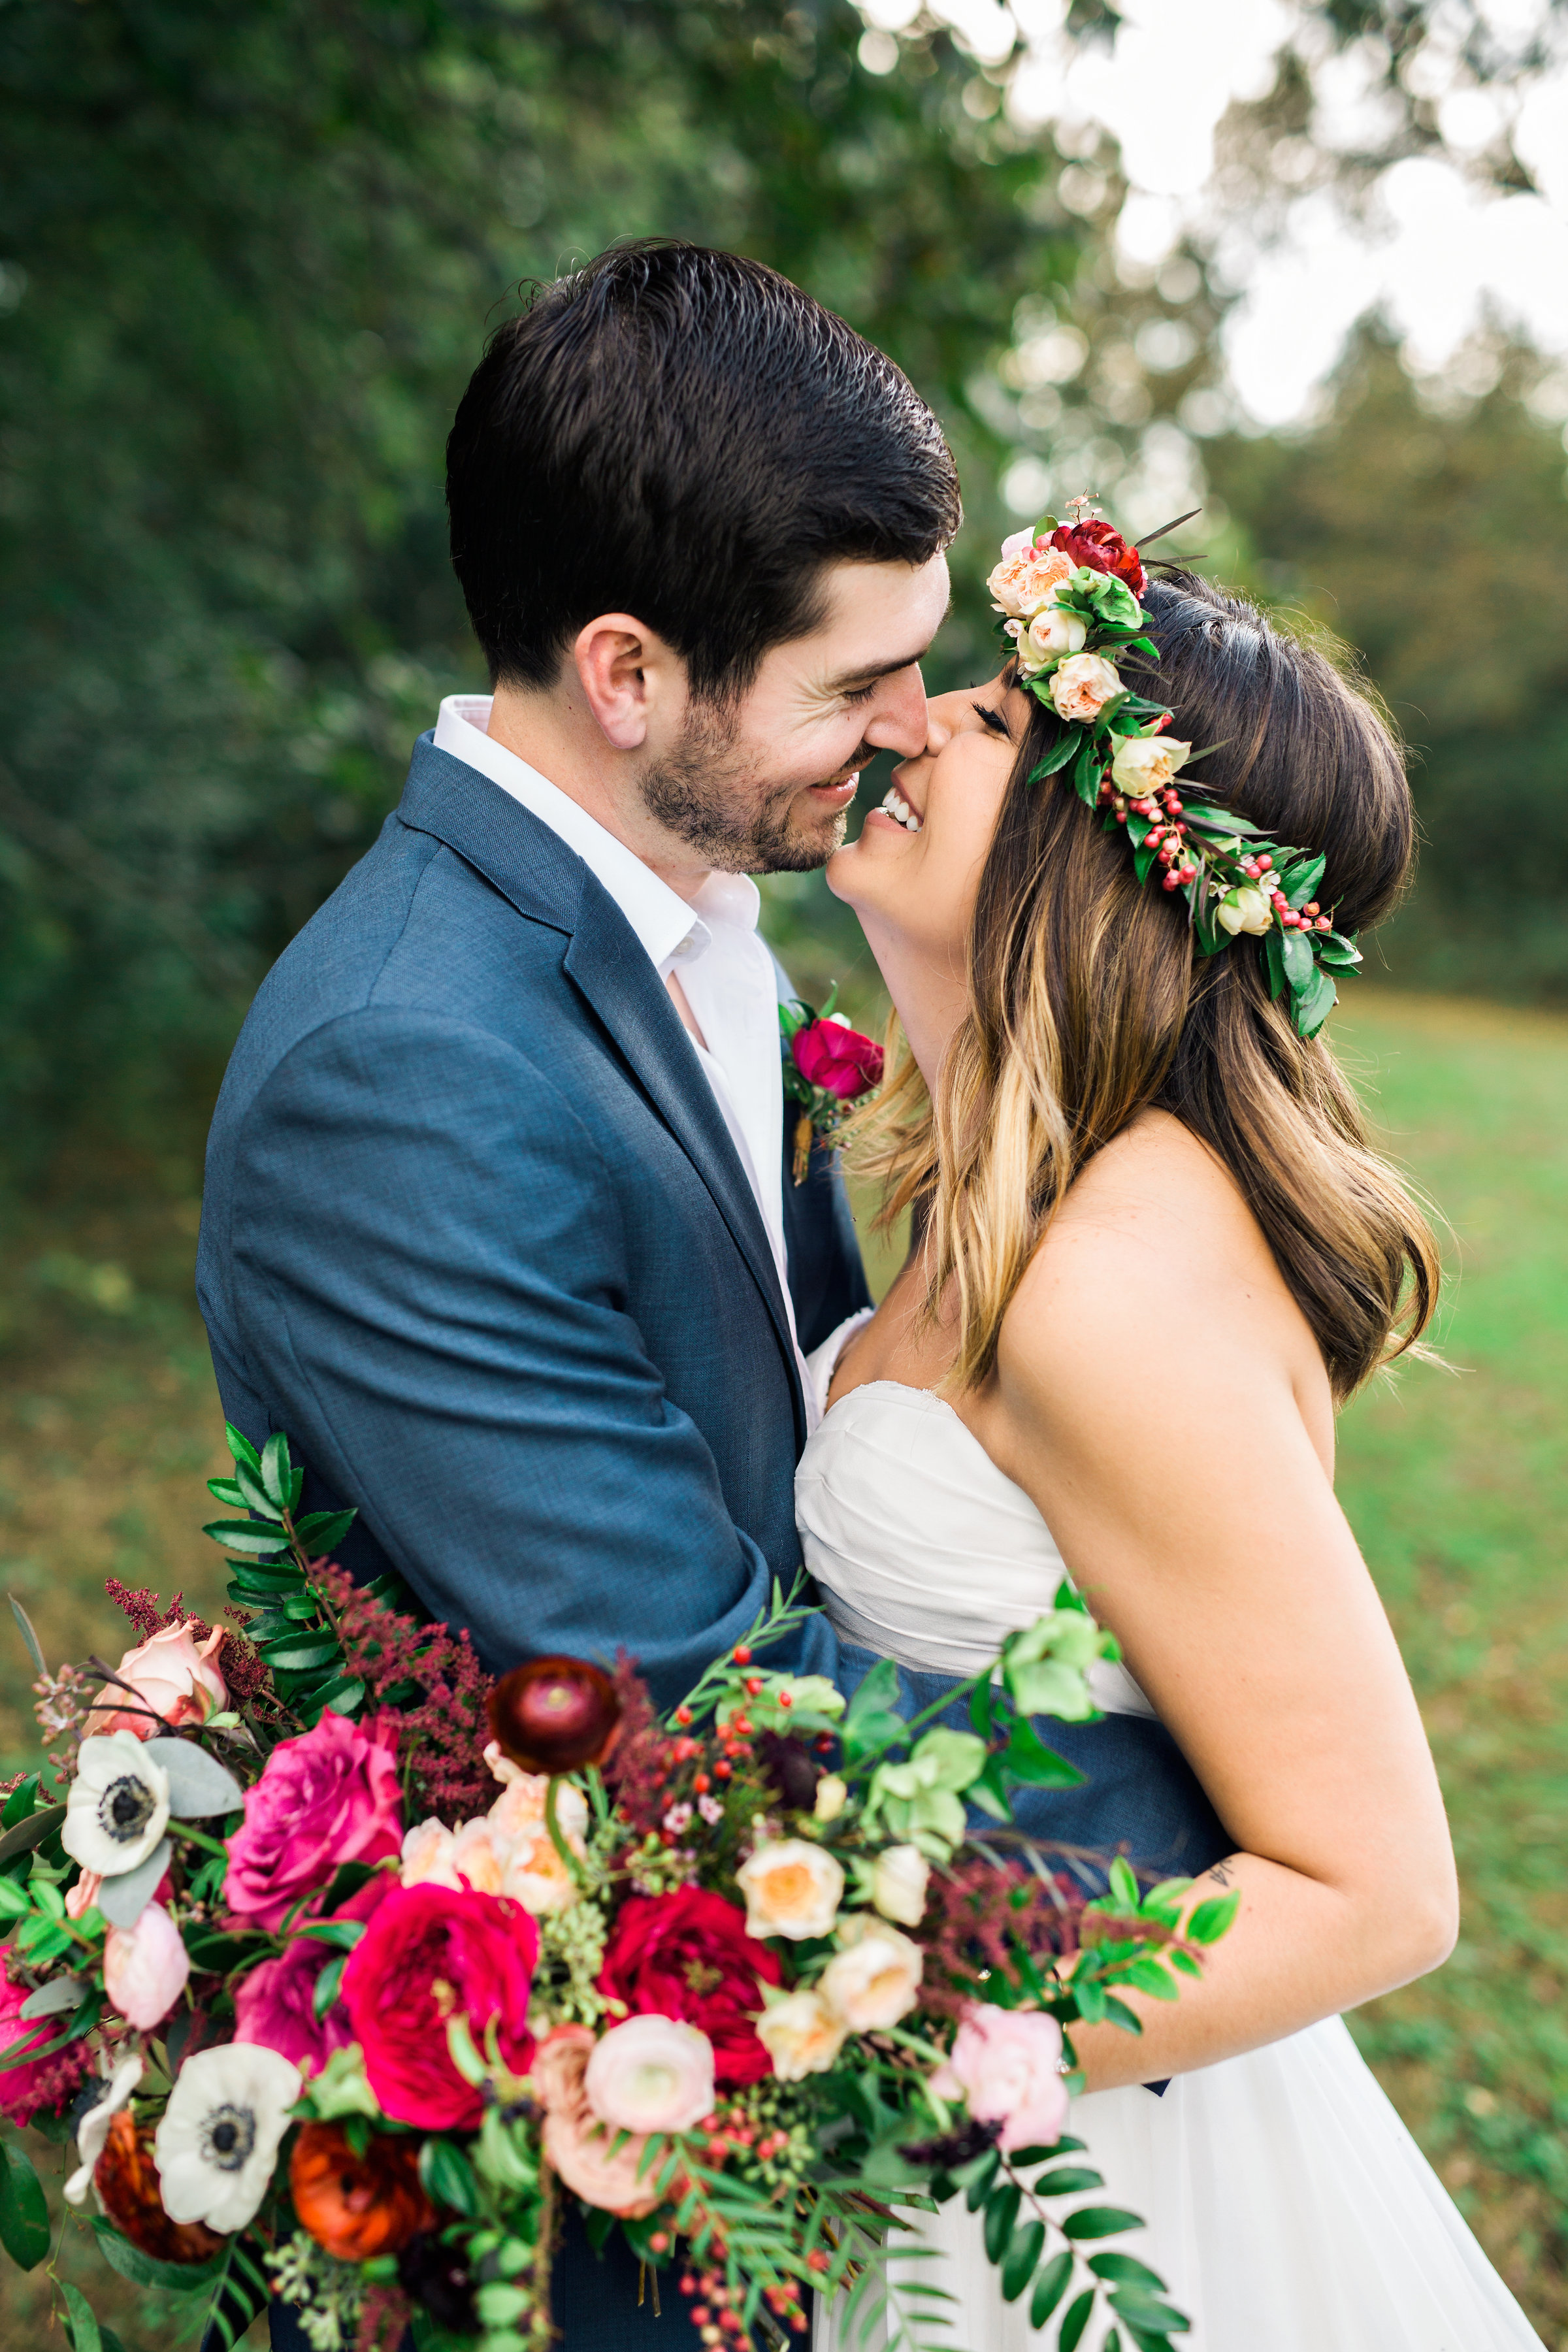 Lush, organic bridal bouquet and flower crown with marsala ranunculus and garden roses // Nashville Wedding Florist